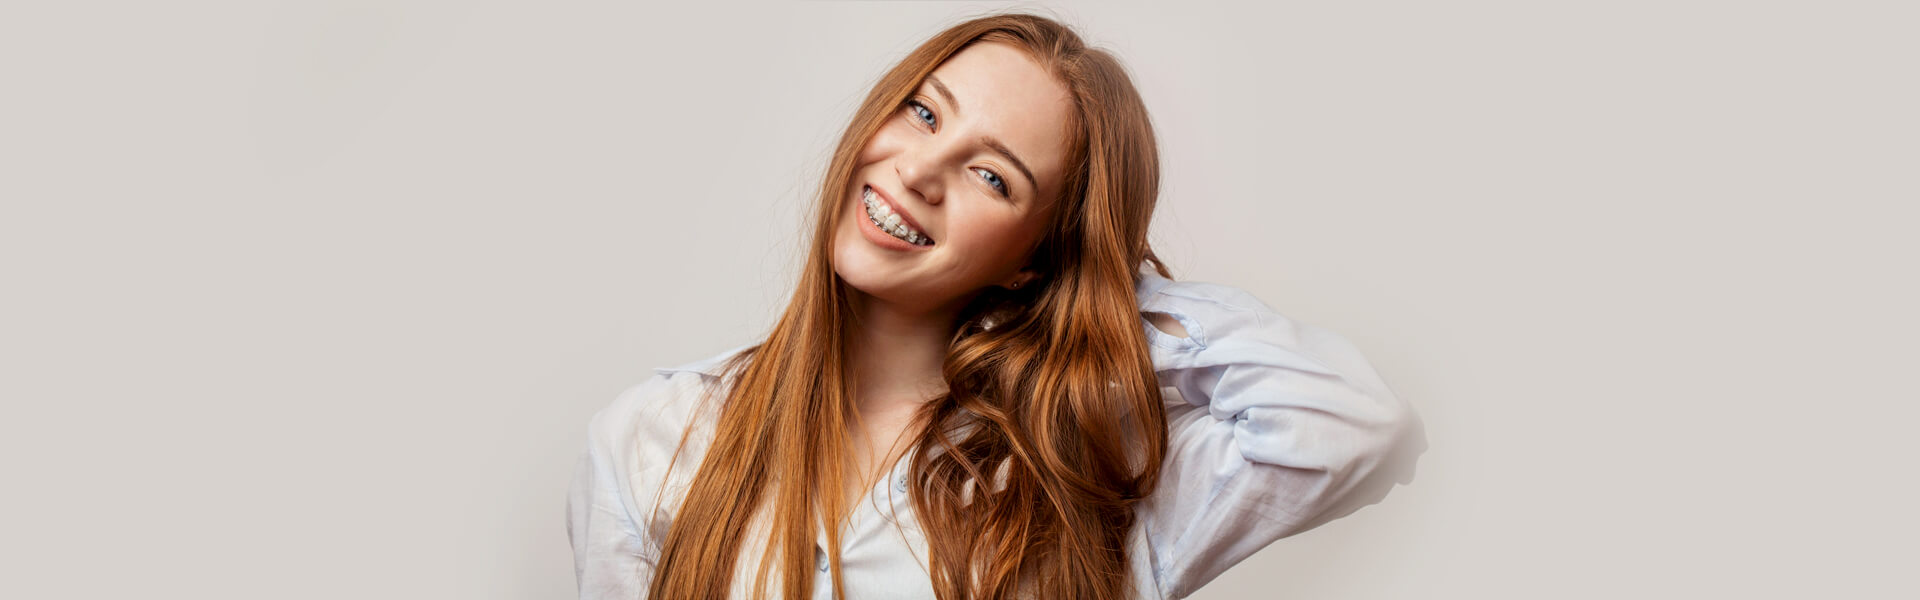 4 Vital Things You Need to Know About Orthodontic Treatment